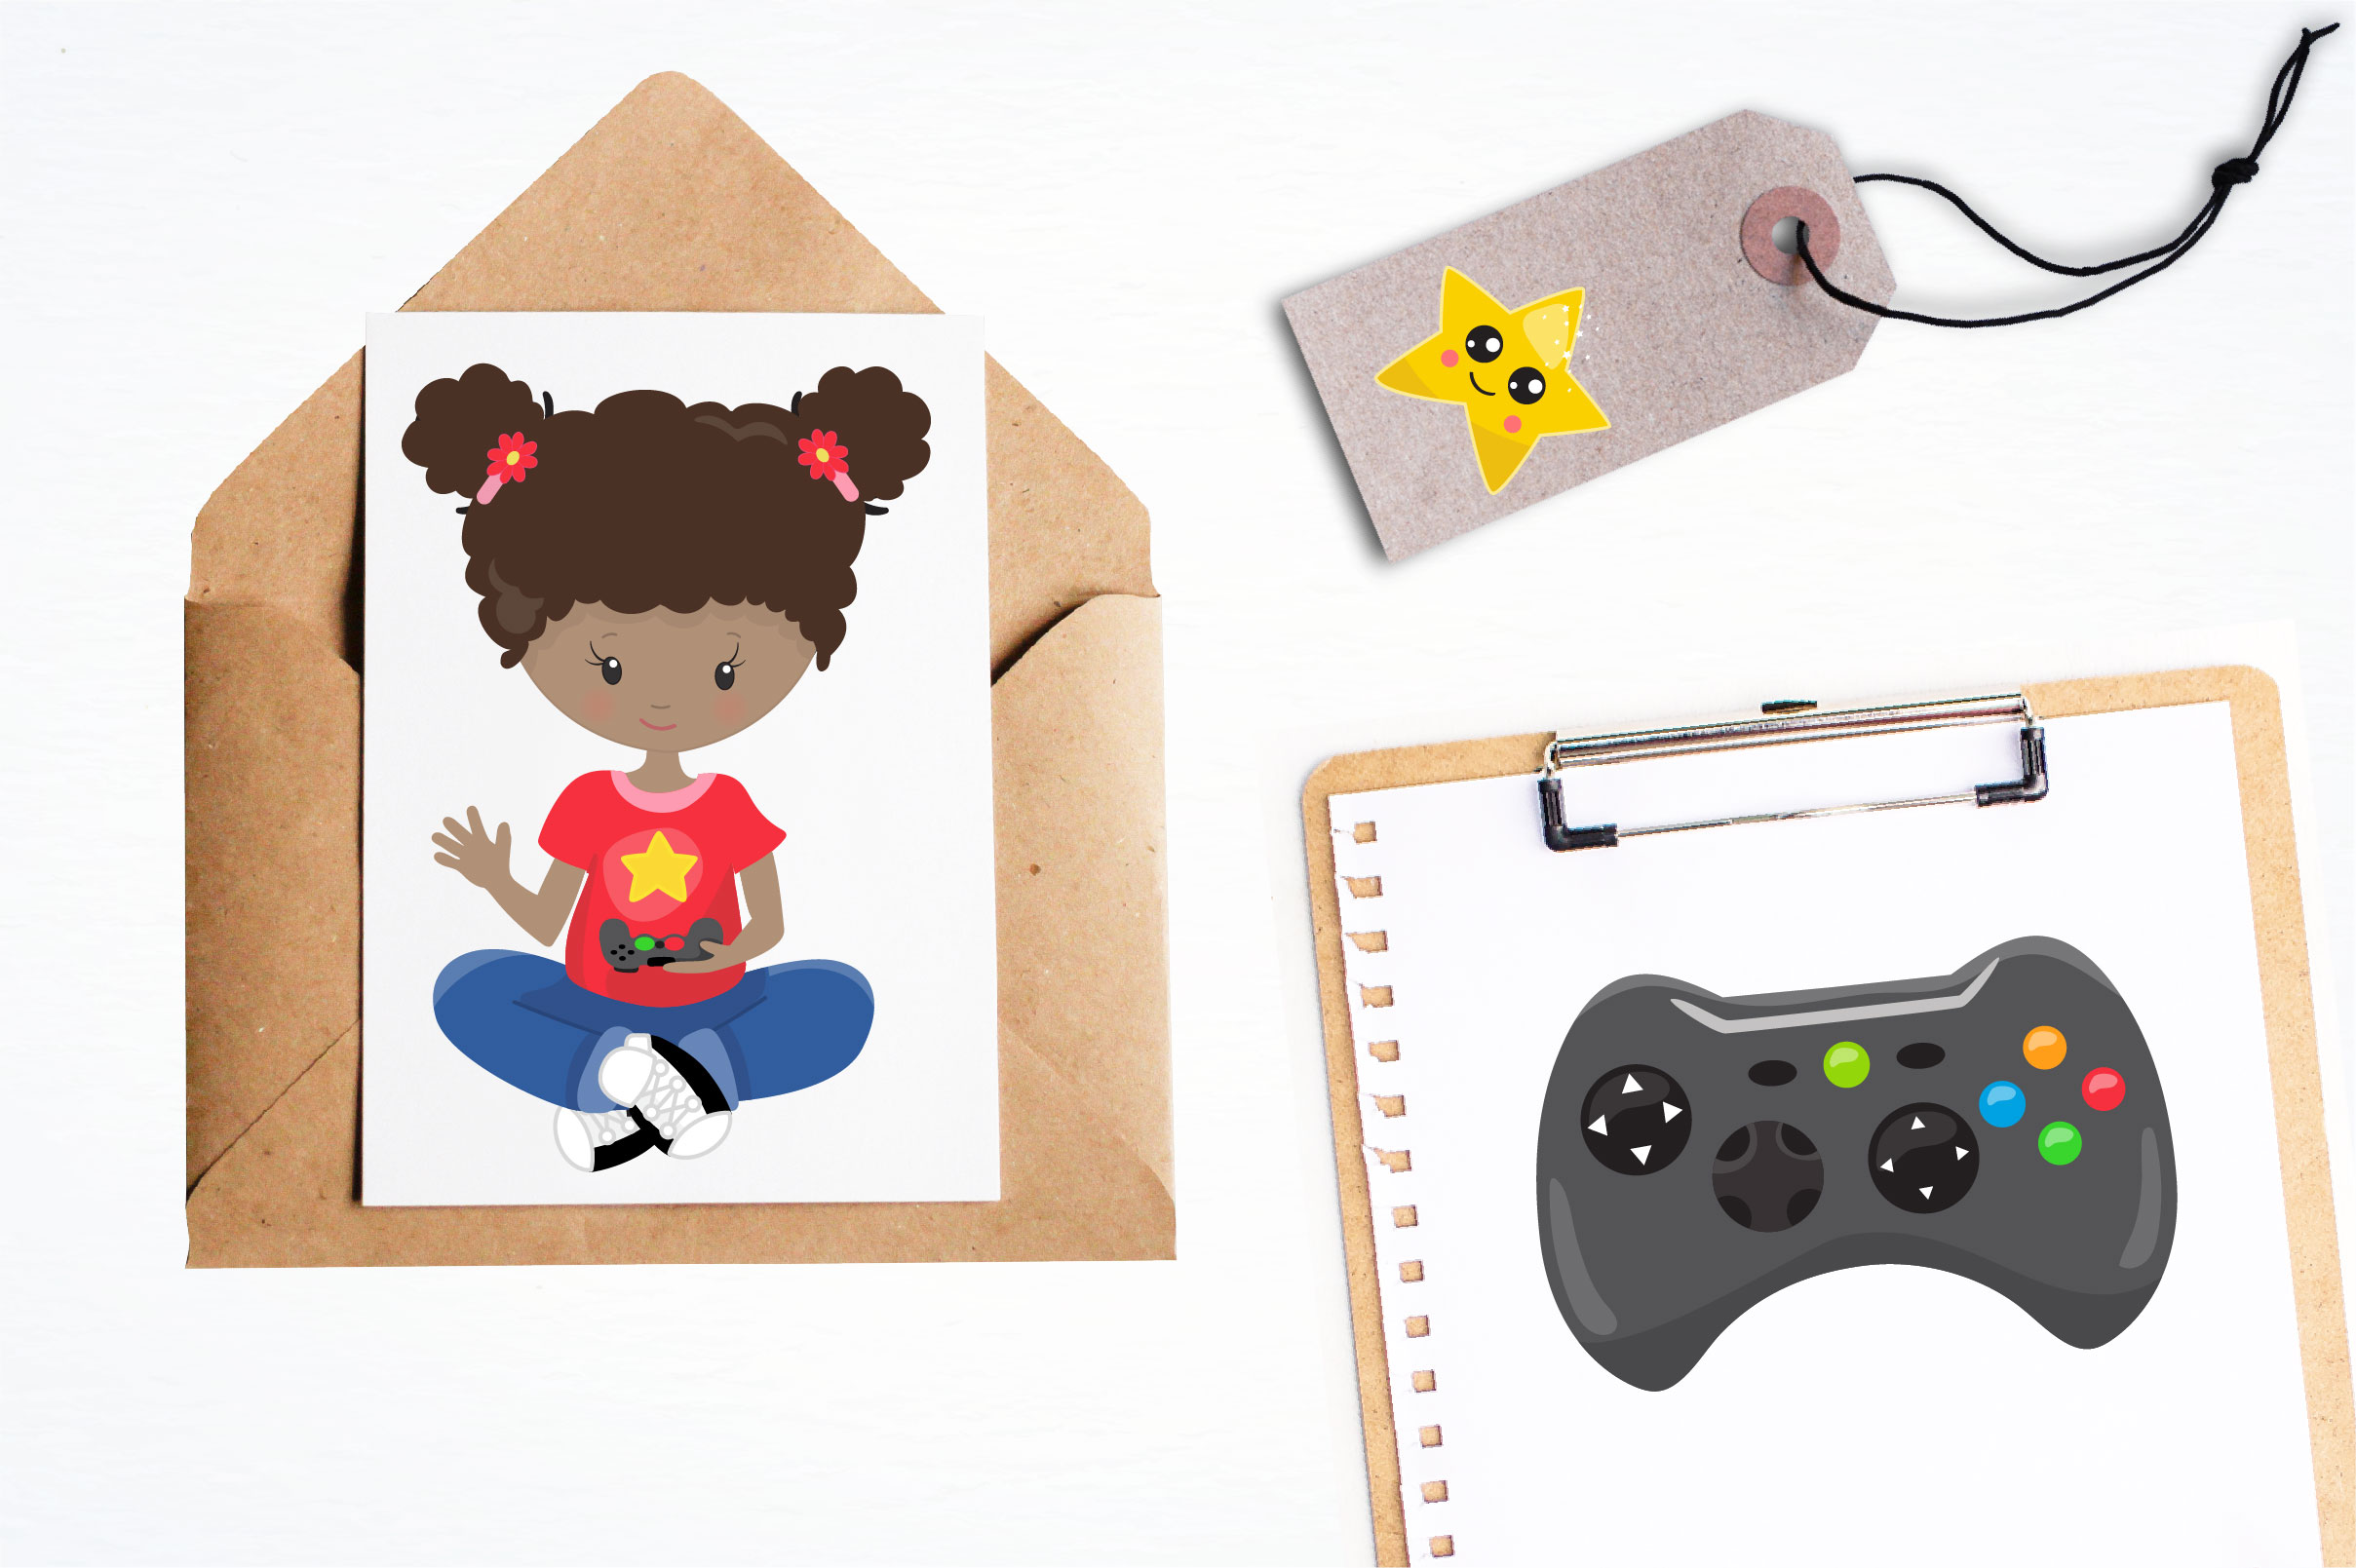 Game kids graphics and illustrations example image 3